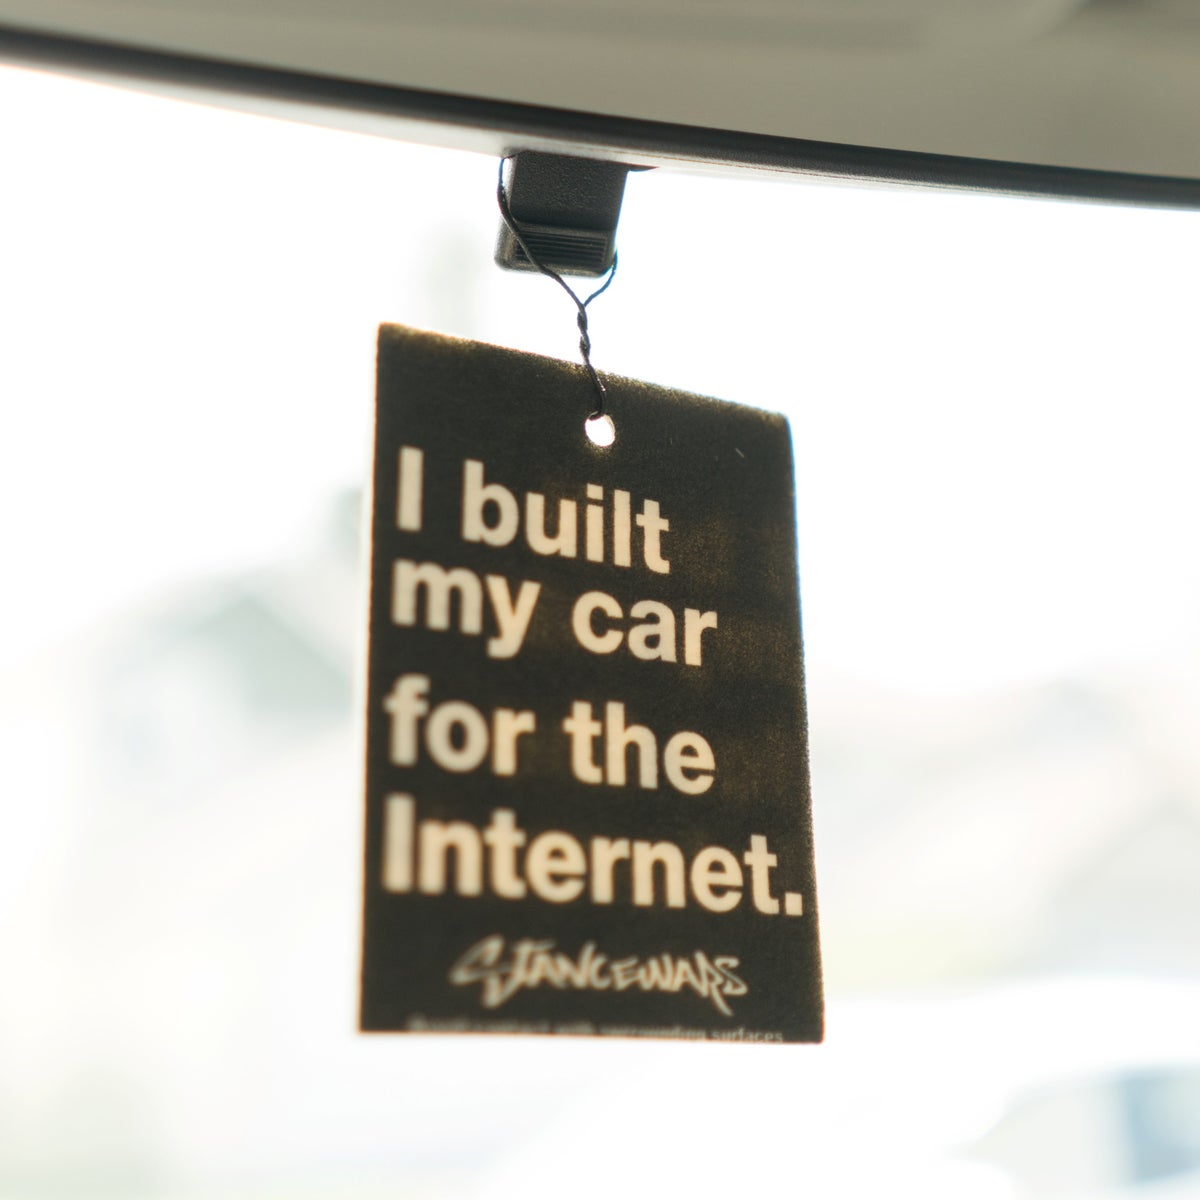 Image of Built for the Internet